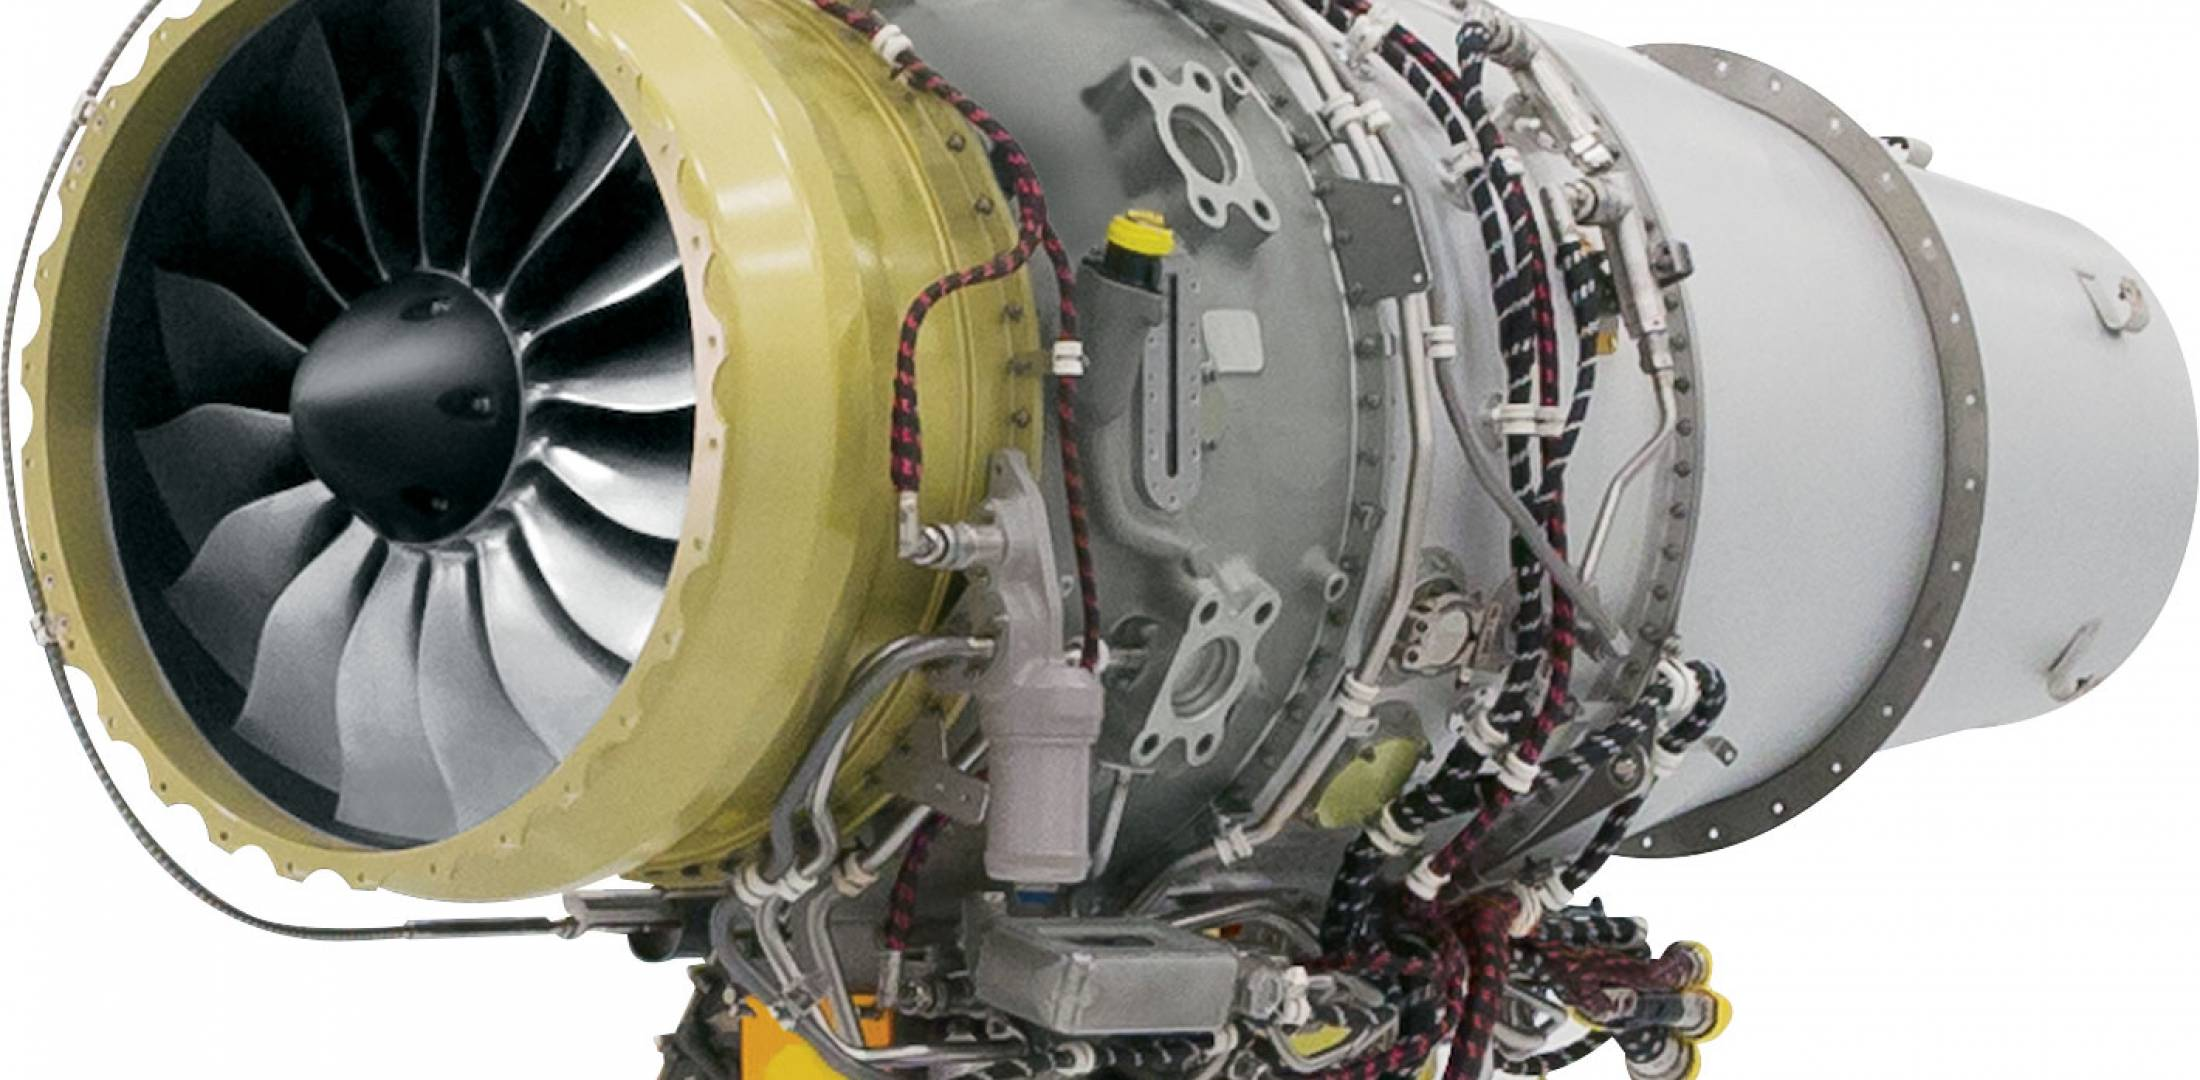 GE Honda Aero Engines Poised to Add to Turbofan Family